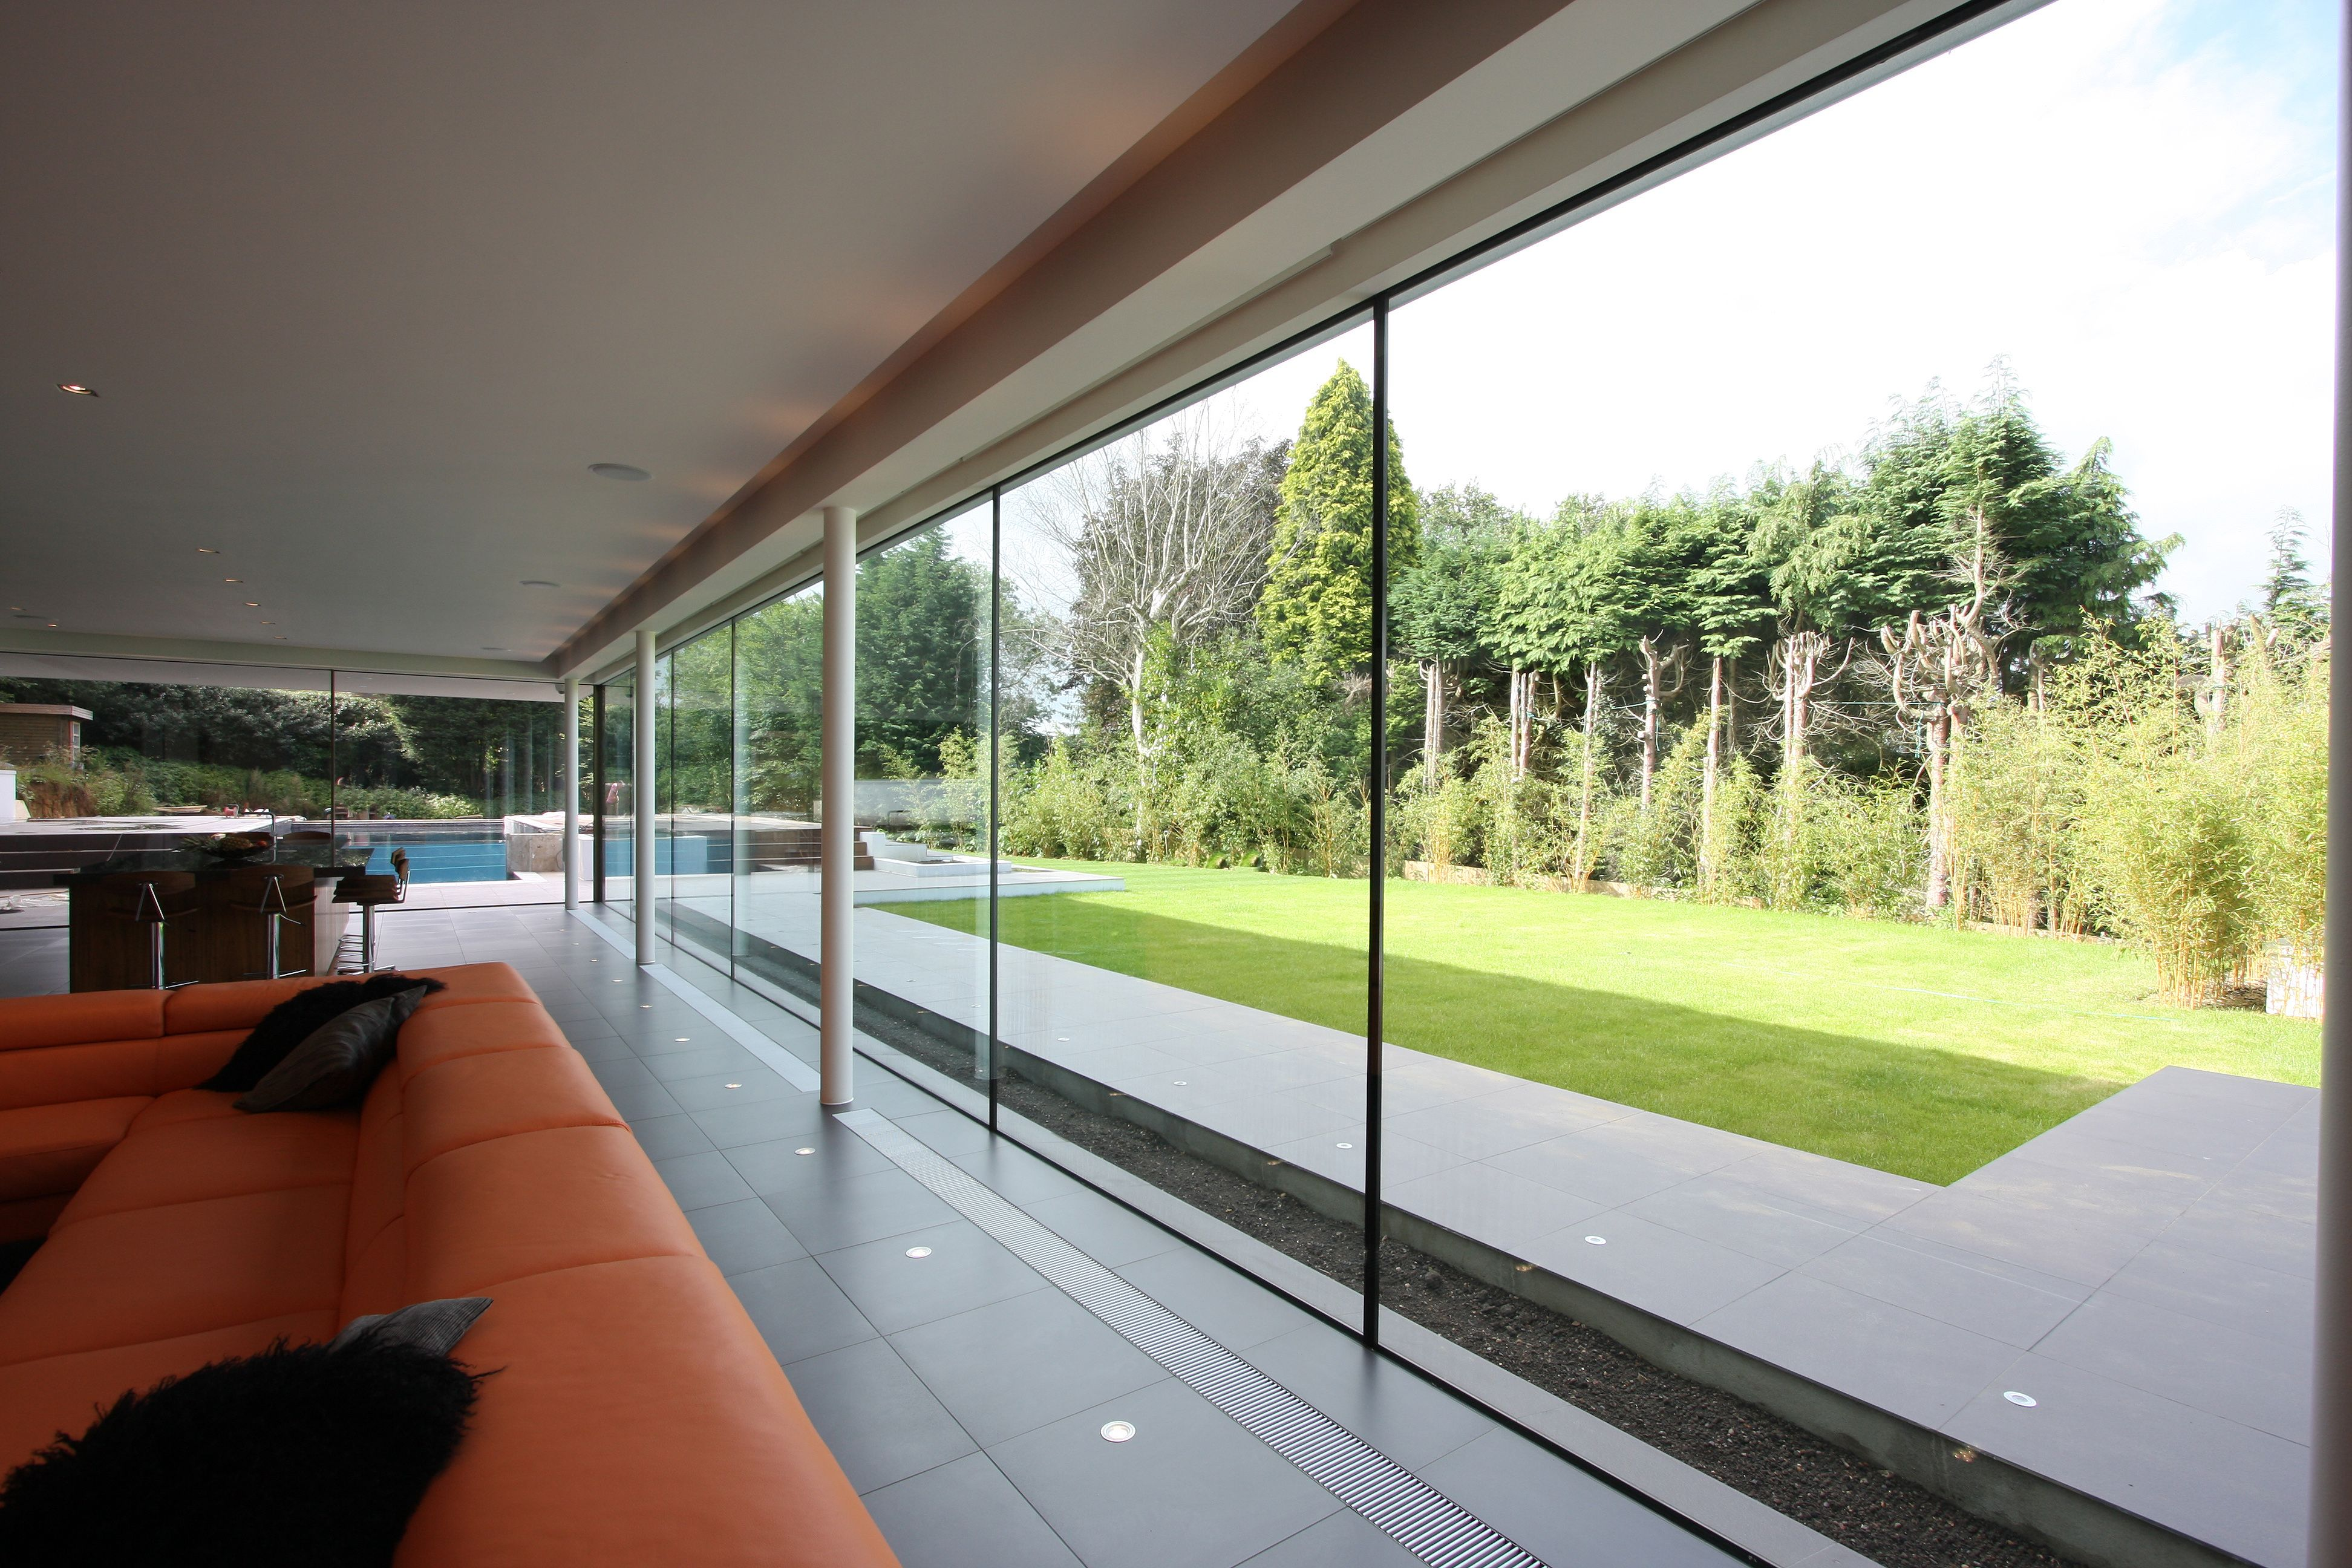 Structural Silicone Joint : Silicone jointed structural glass wall internal view